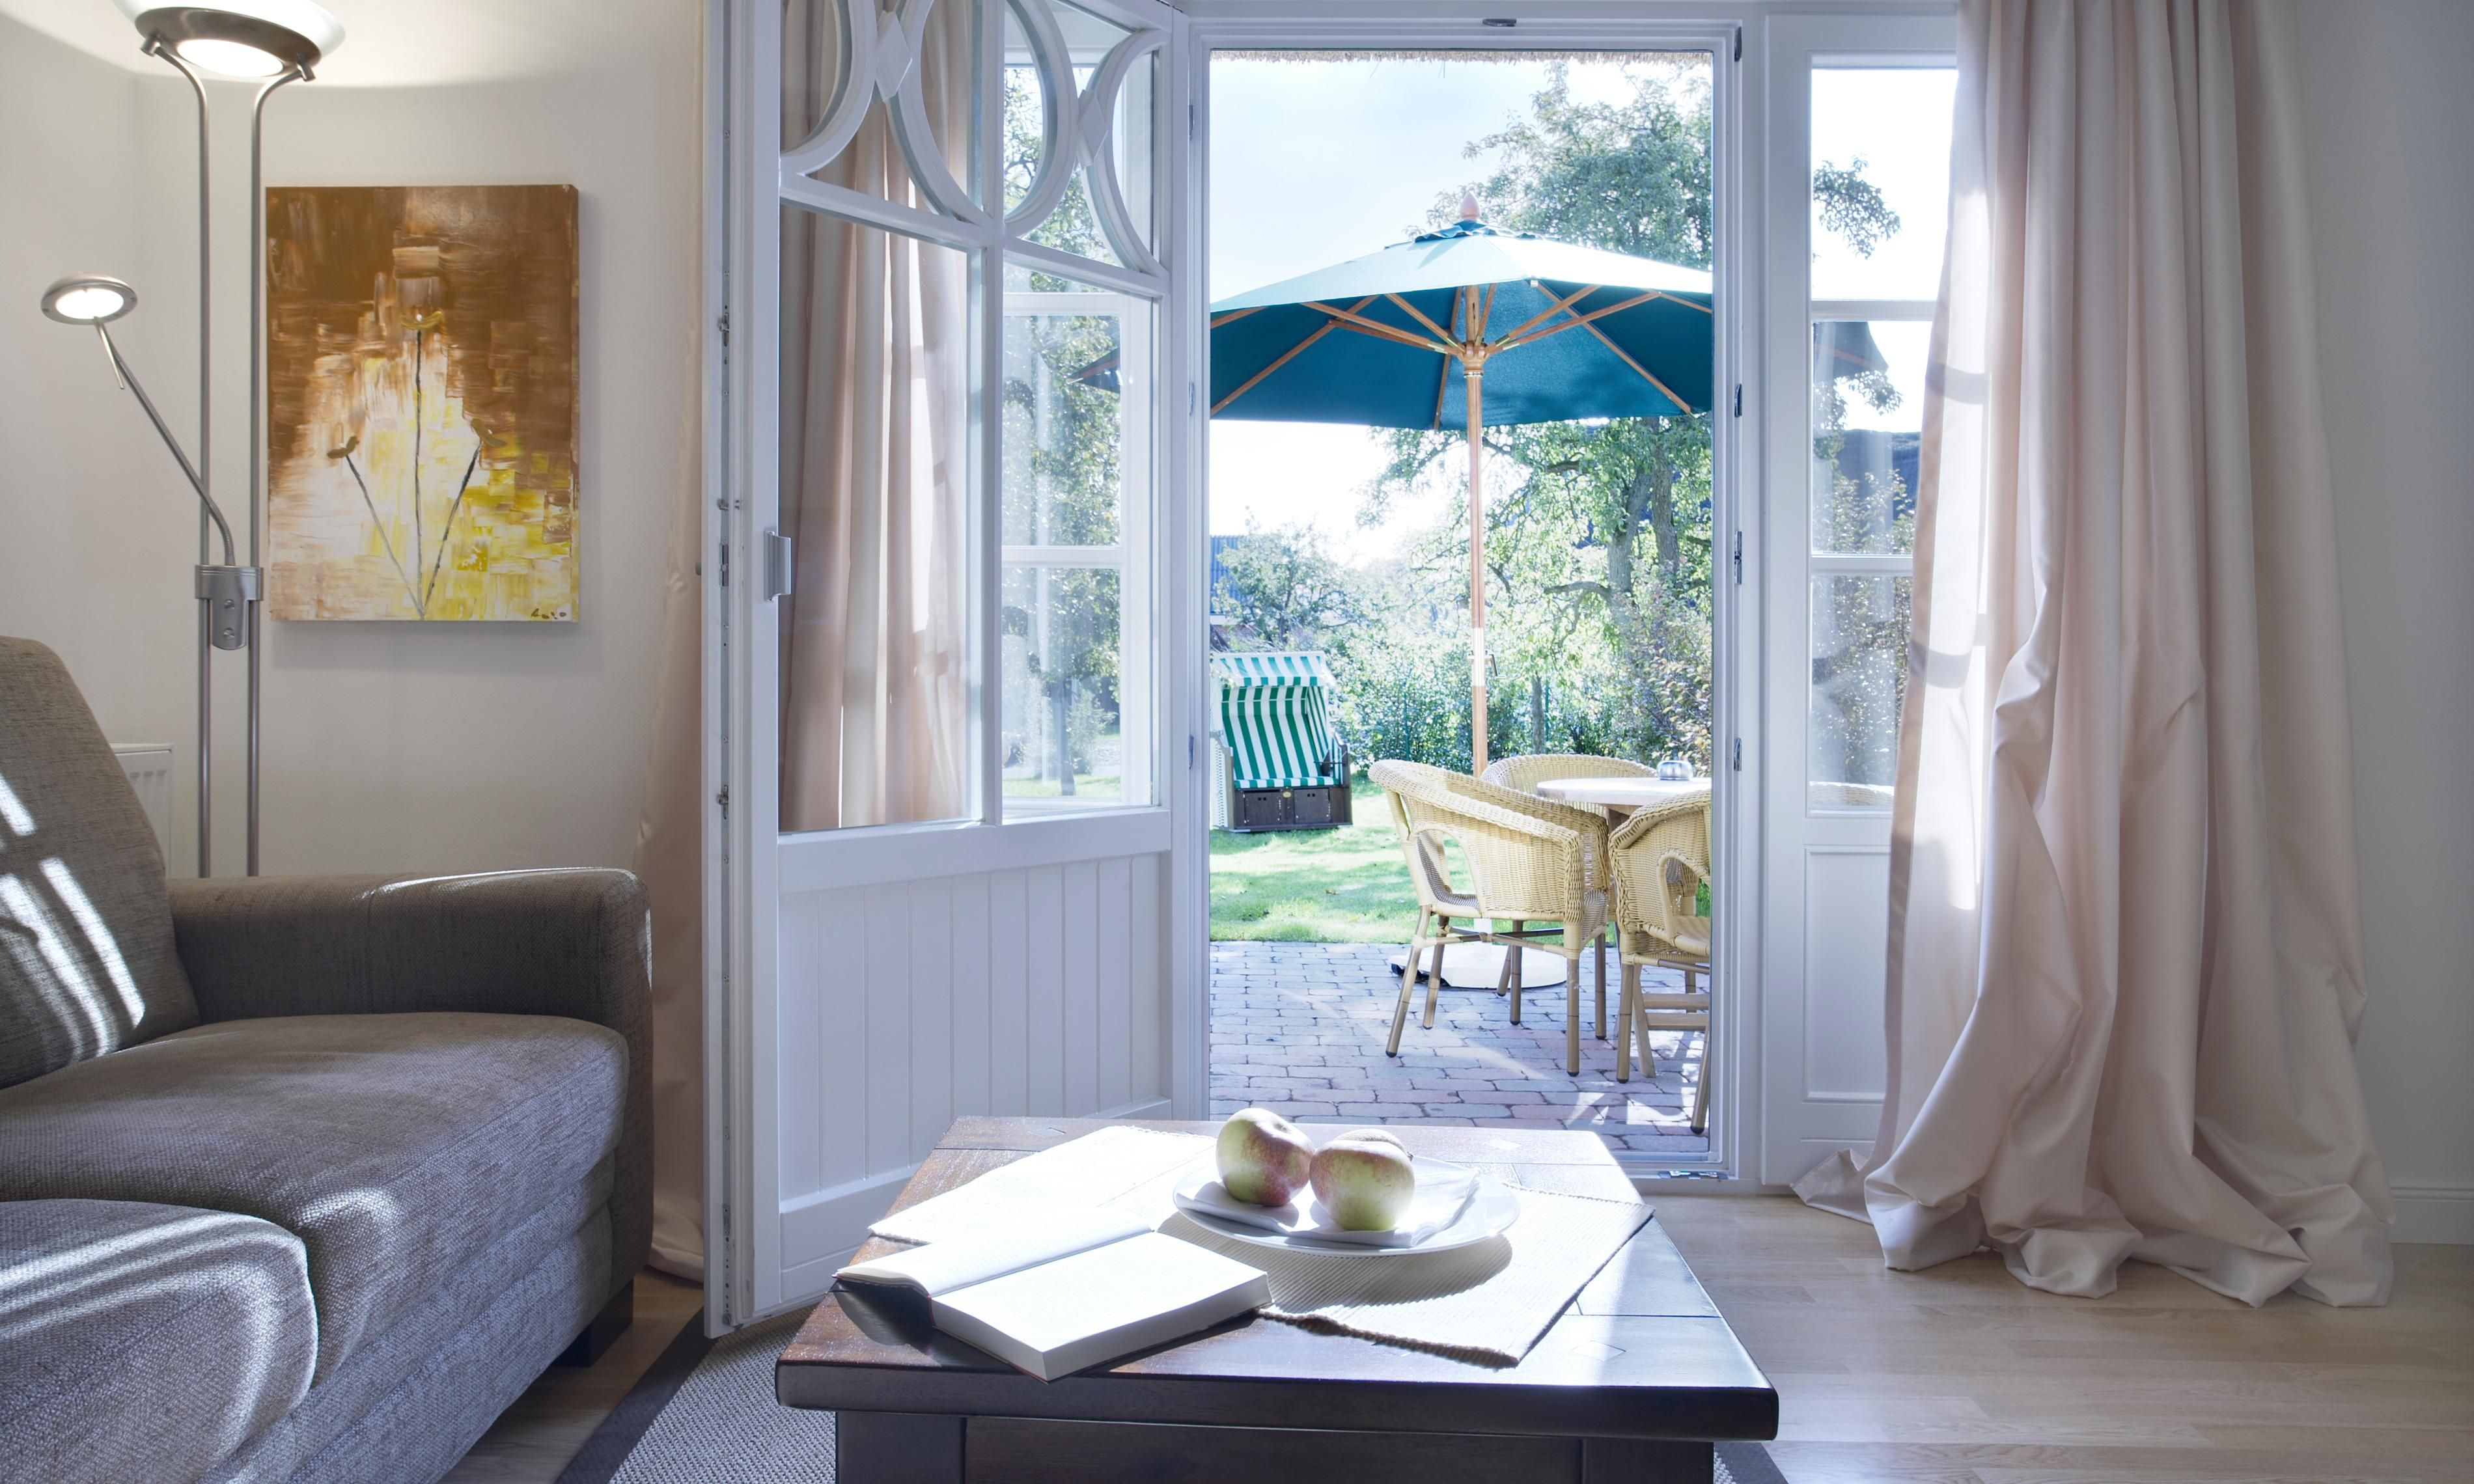 20 great hotels, B&Bs and apartments in Germany | Great ...